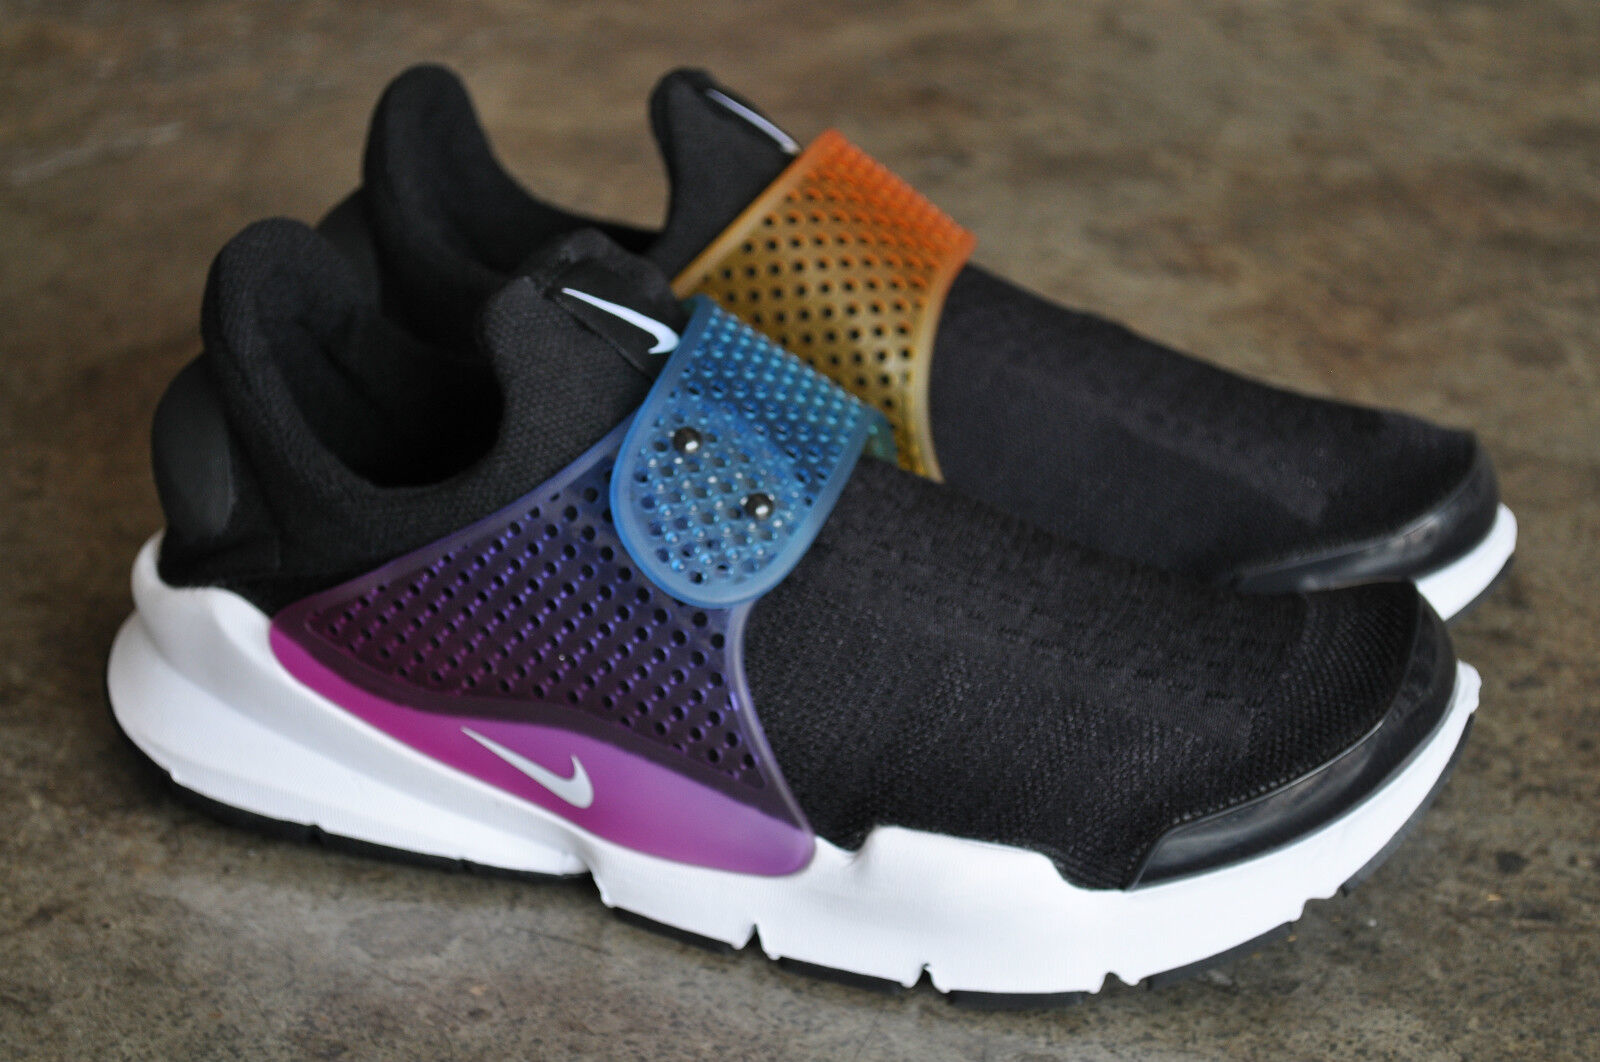 Nike Sock Dart True